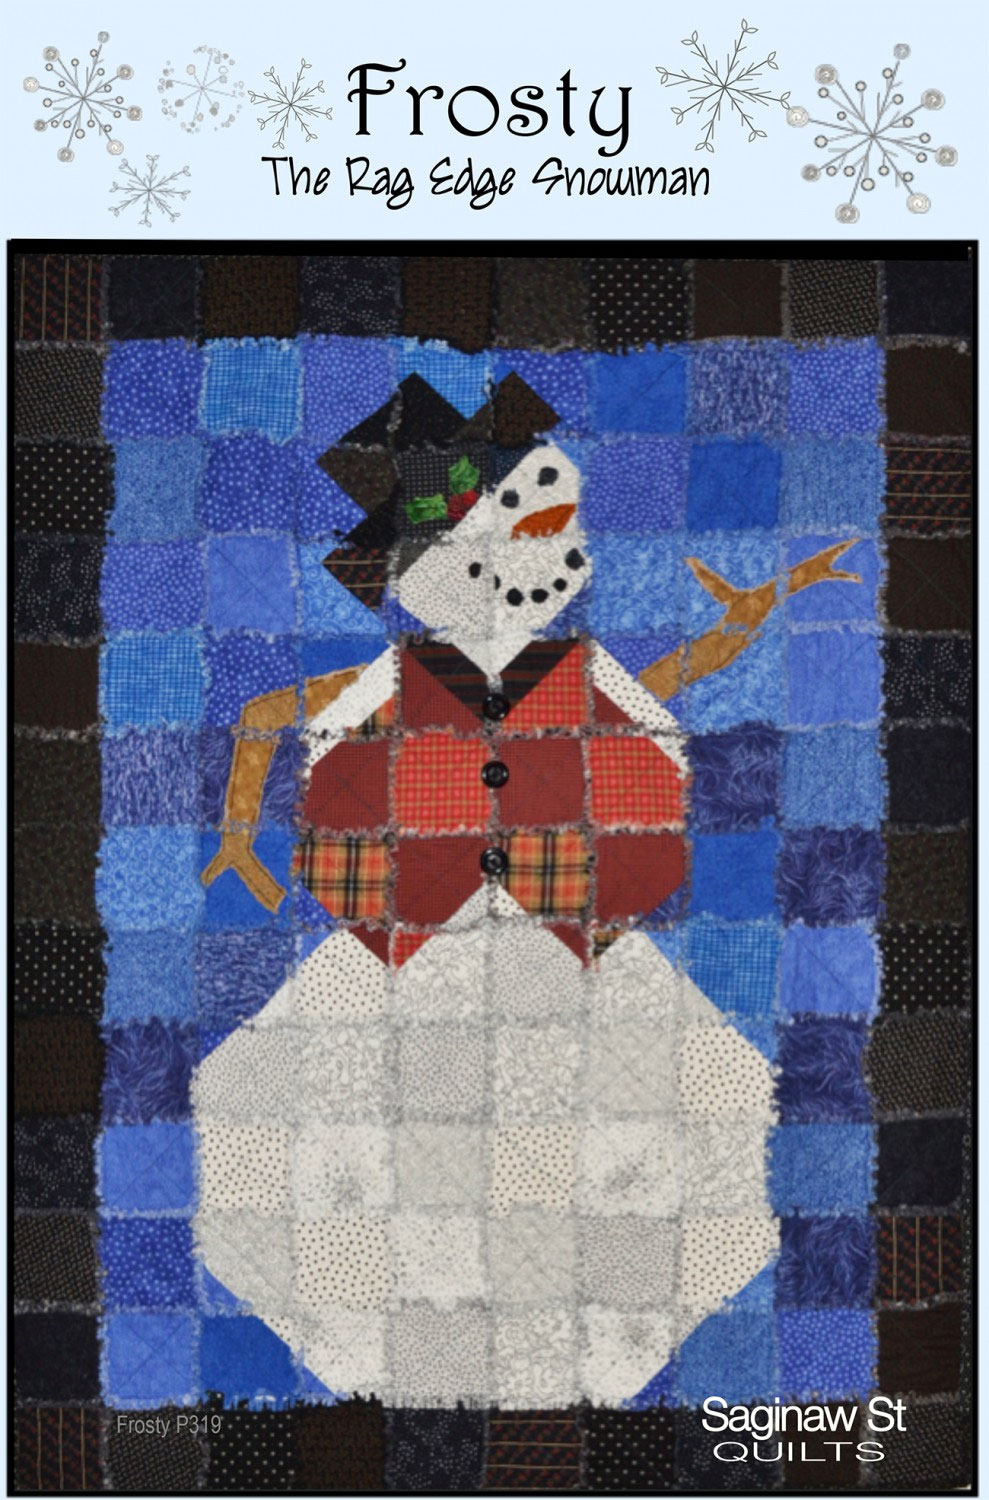 frosty-the-rag-edge-snowman-quilt-sewing-pattern-Saginaw-st-quilts-front